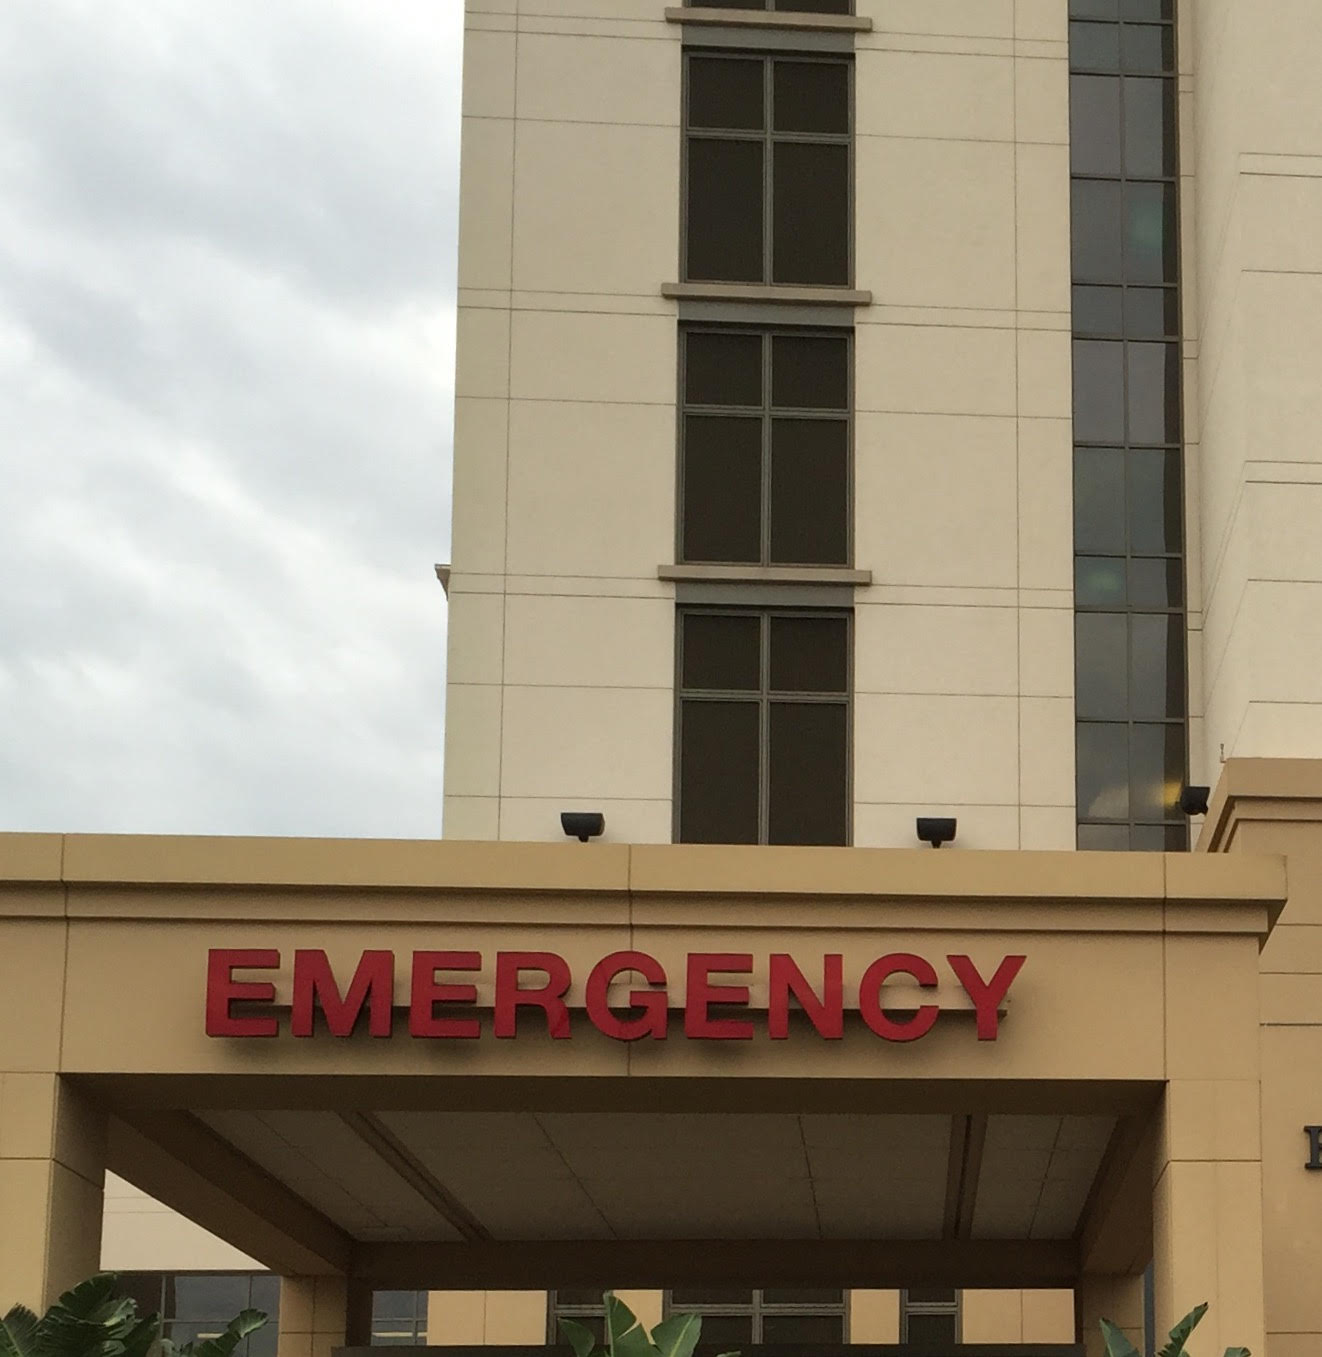 WHAT TO EXPECT WHEN YOU VISIT THE EMERGENCY ROOM – Yvette McQueen, MD